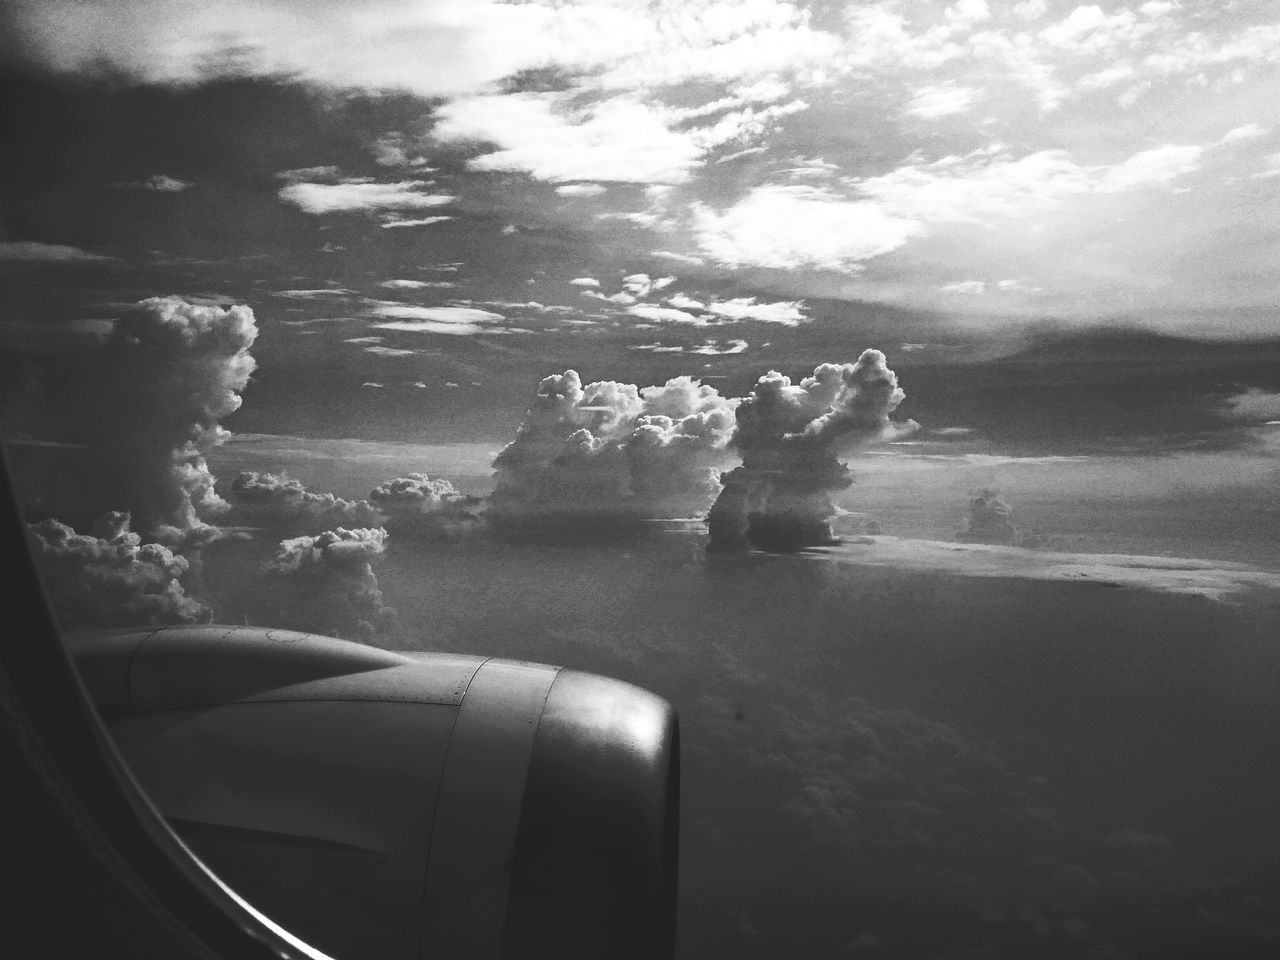 Nothing Special Monochrome Blackandwhite From An Airplane Window Getting Inspired Photography Cloudporn Skyporn Enjoying Life Shades Of Grey Aiiko Untouched 💯pure Aiikos Black.n.white Aiikos Paradise Aiikos Heaven @aiiko